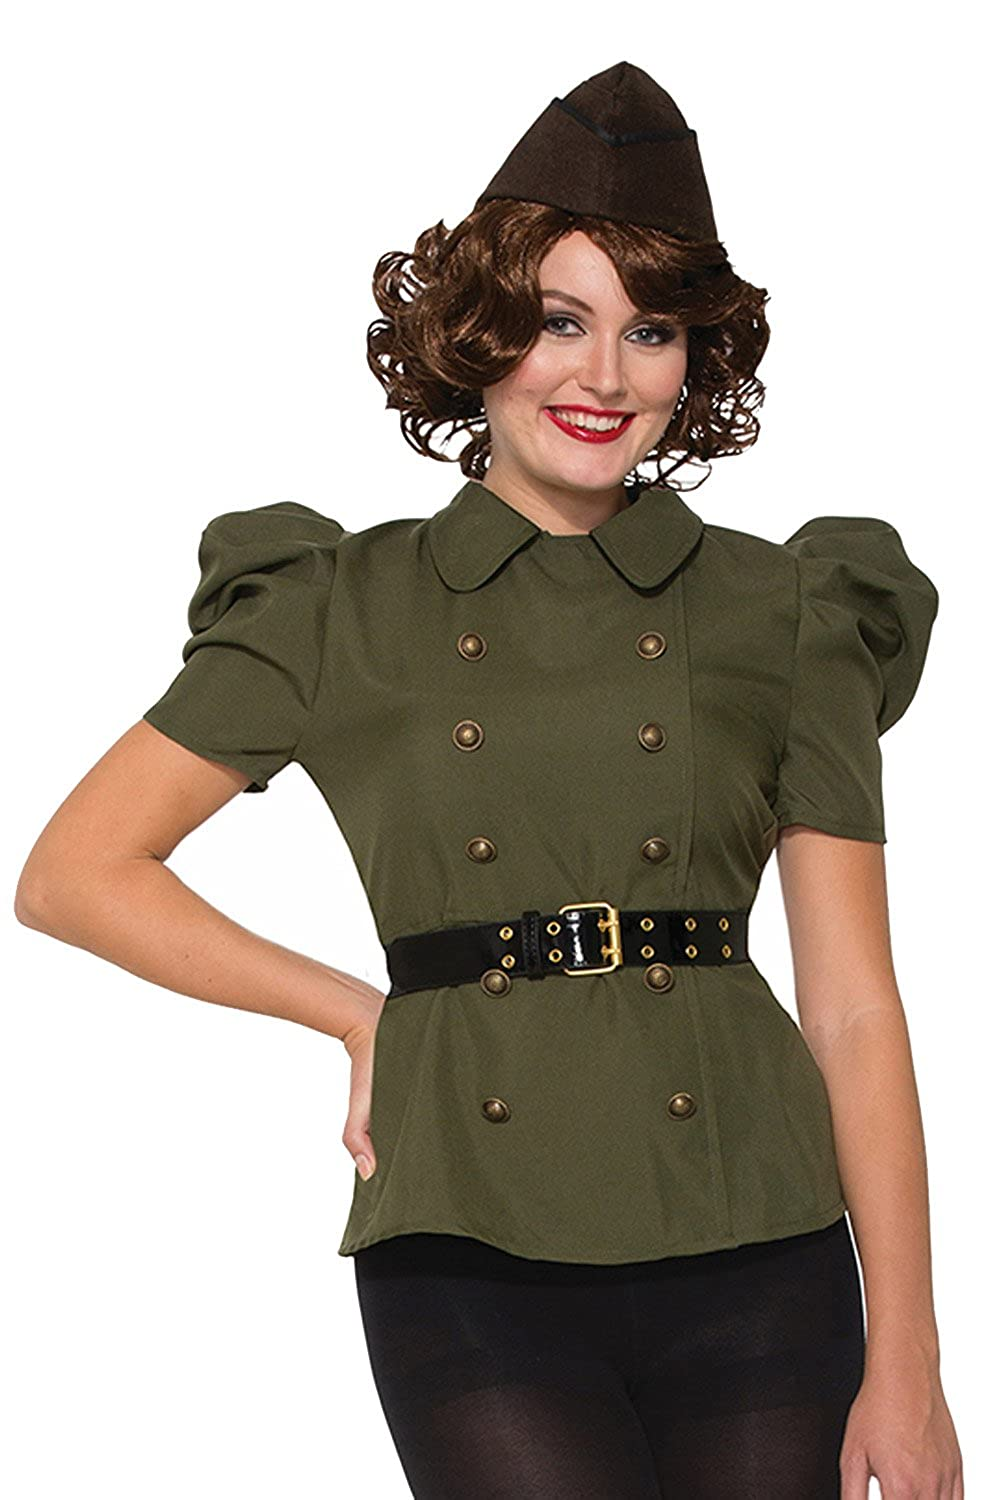 Rosie the Riveter Costume & Outfit Ideas Bombshells Adult Costume- $24.47 AT vintagedancer.com